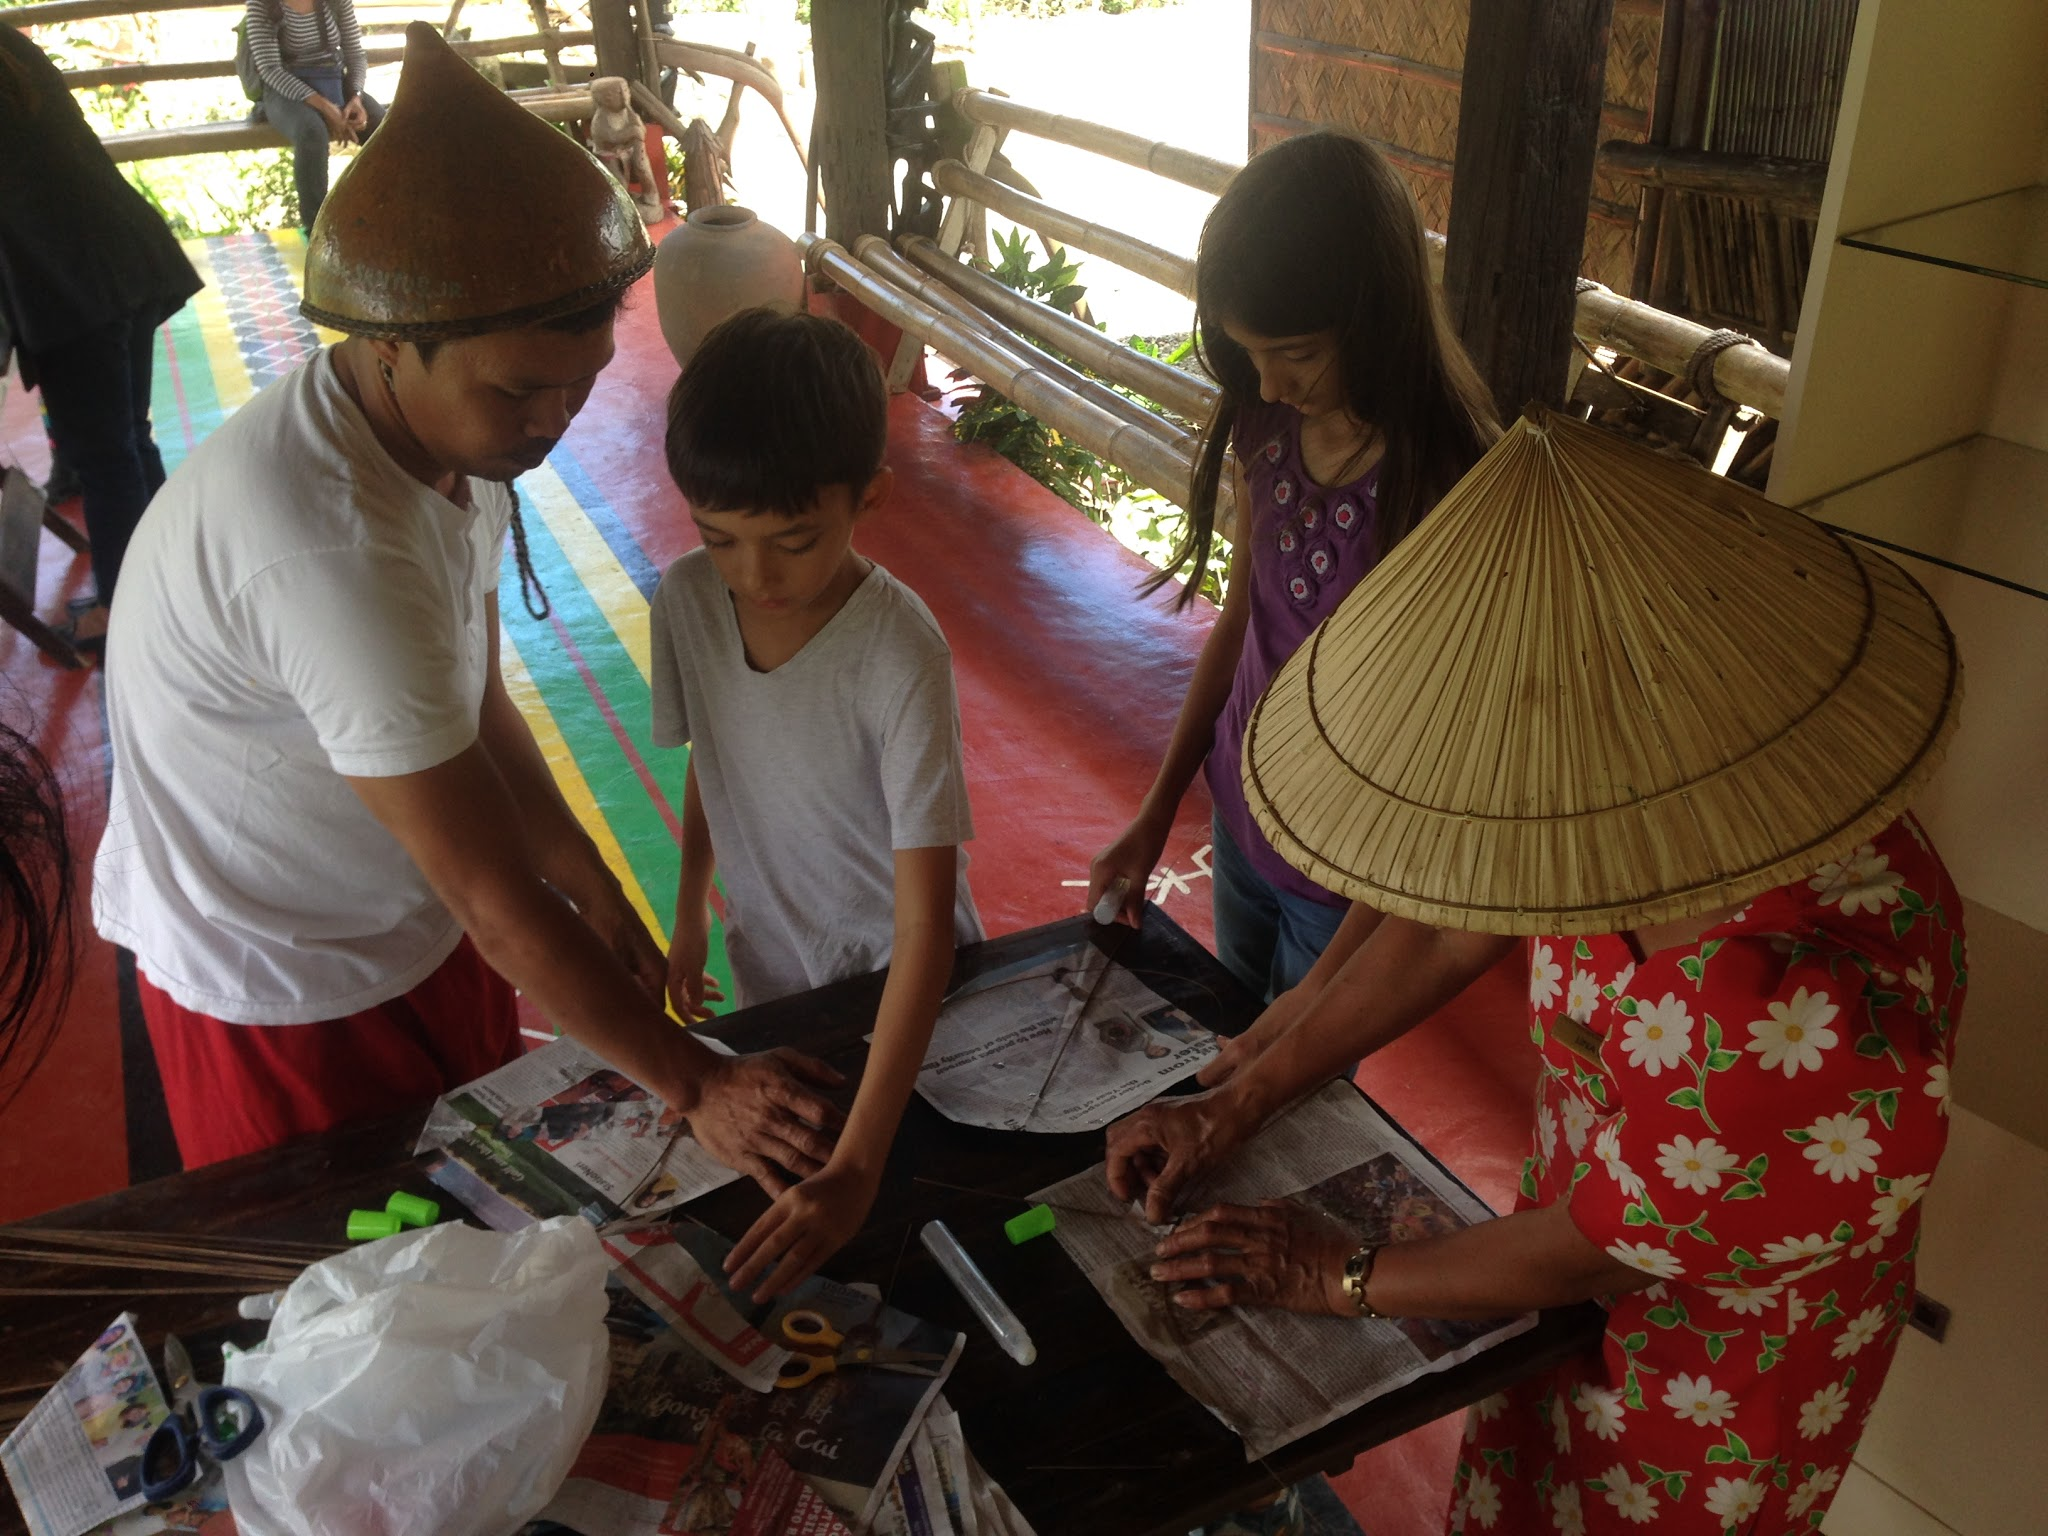 Making kites from newspaper, long twigs, glue and thread